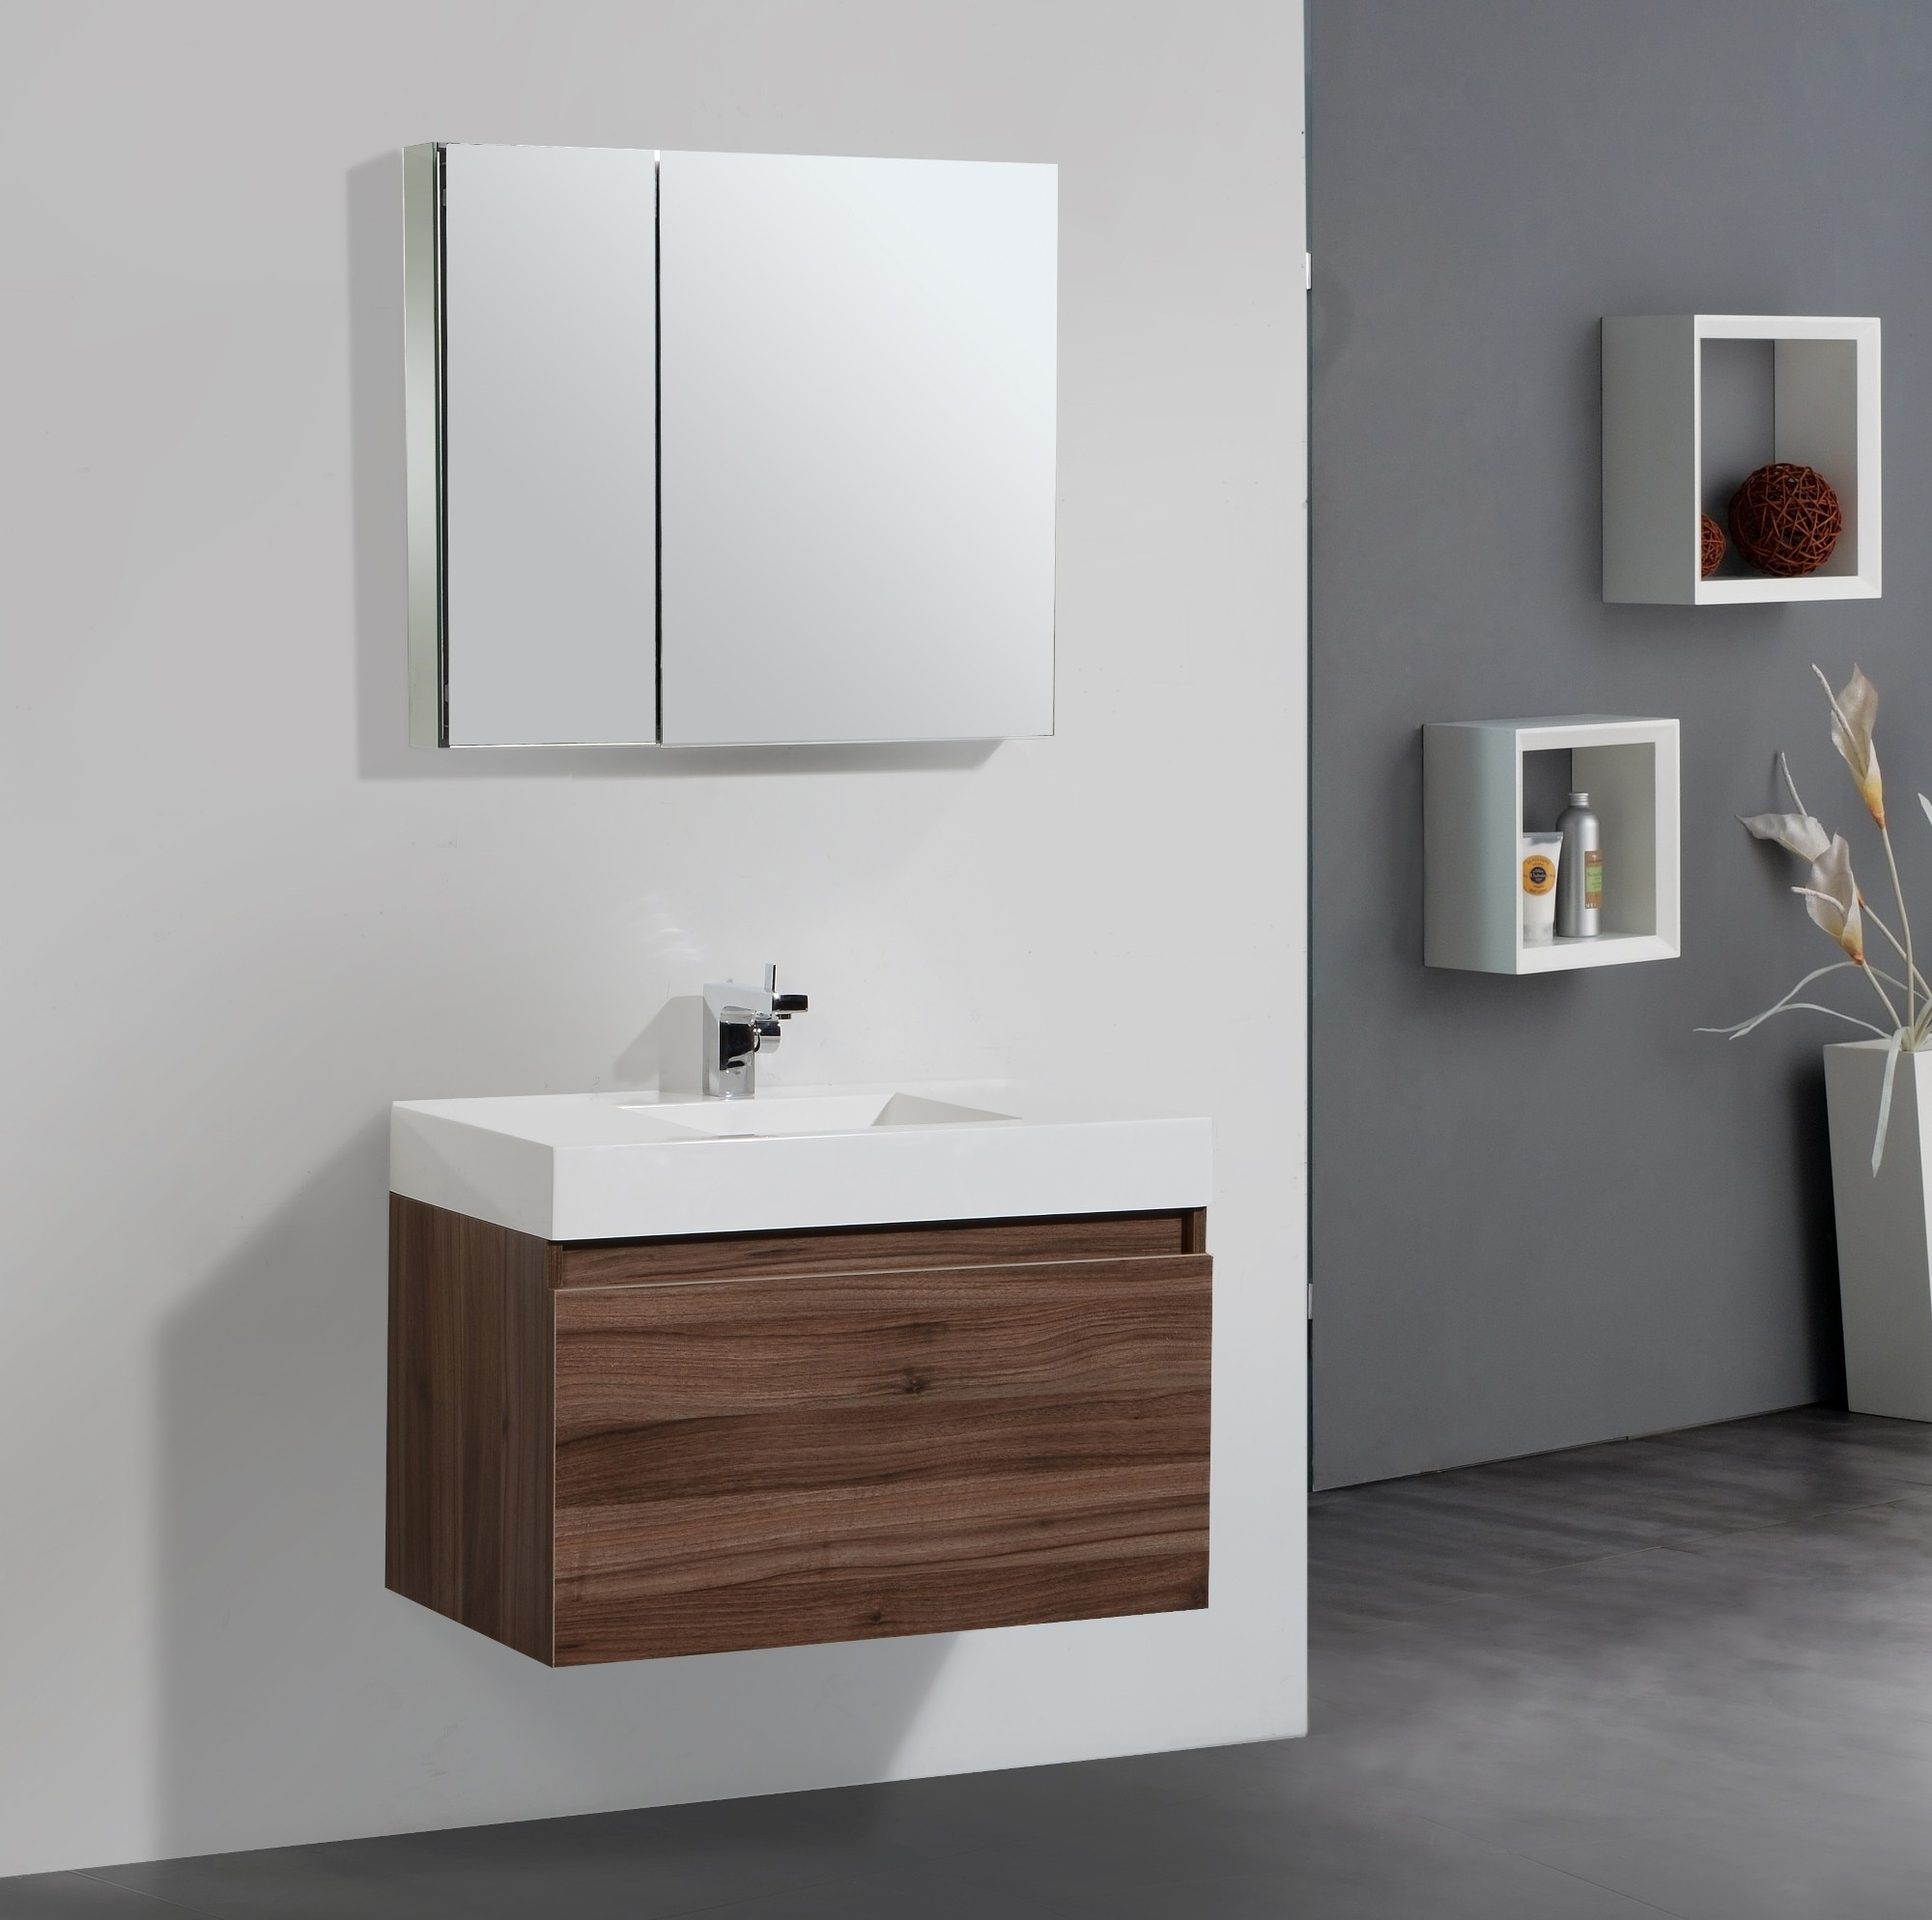 Small Bathroom Sinks With Cabinets30 best bathroom cabinet ideas small vanity table gray